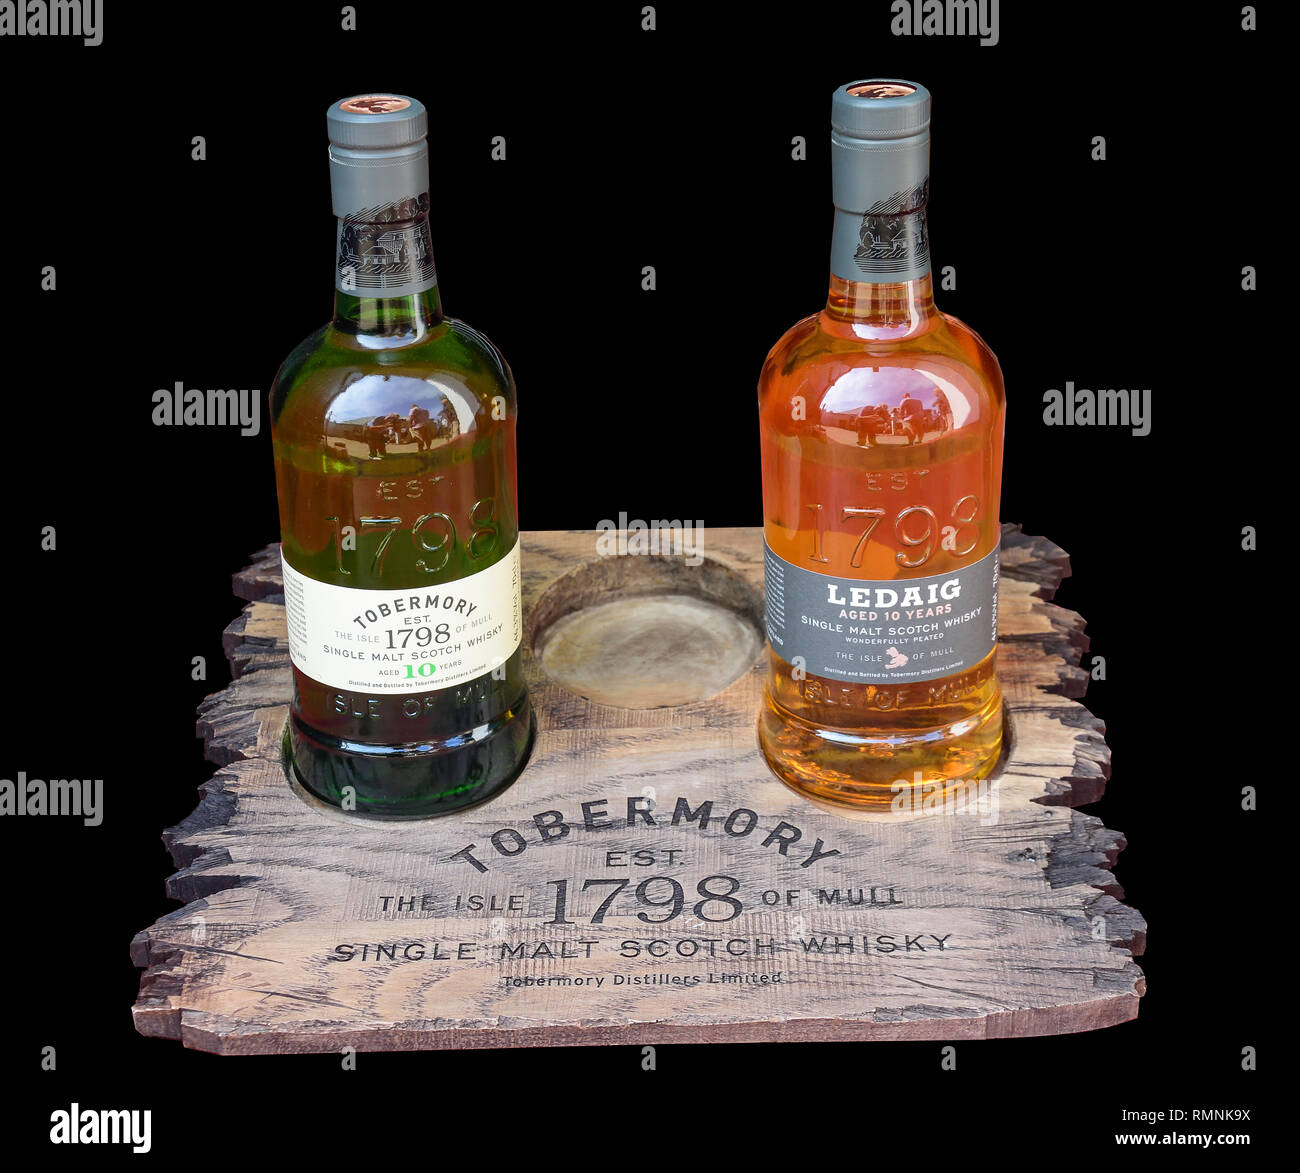 Bottles of whisky at Tobermory Distillery Visitor Centre, Ledaig, Tobermory, Isle of Bute, Inner Hebrides, Argyll and Bute, Scotland, United Kingdom - Stock Image